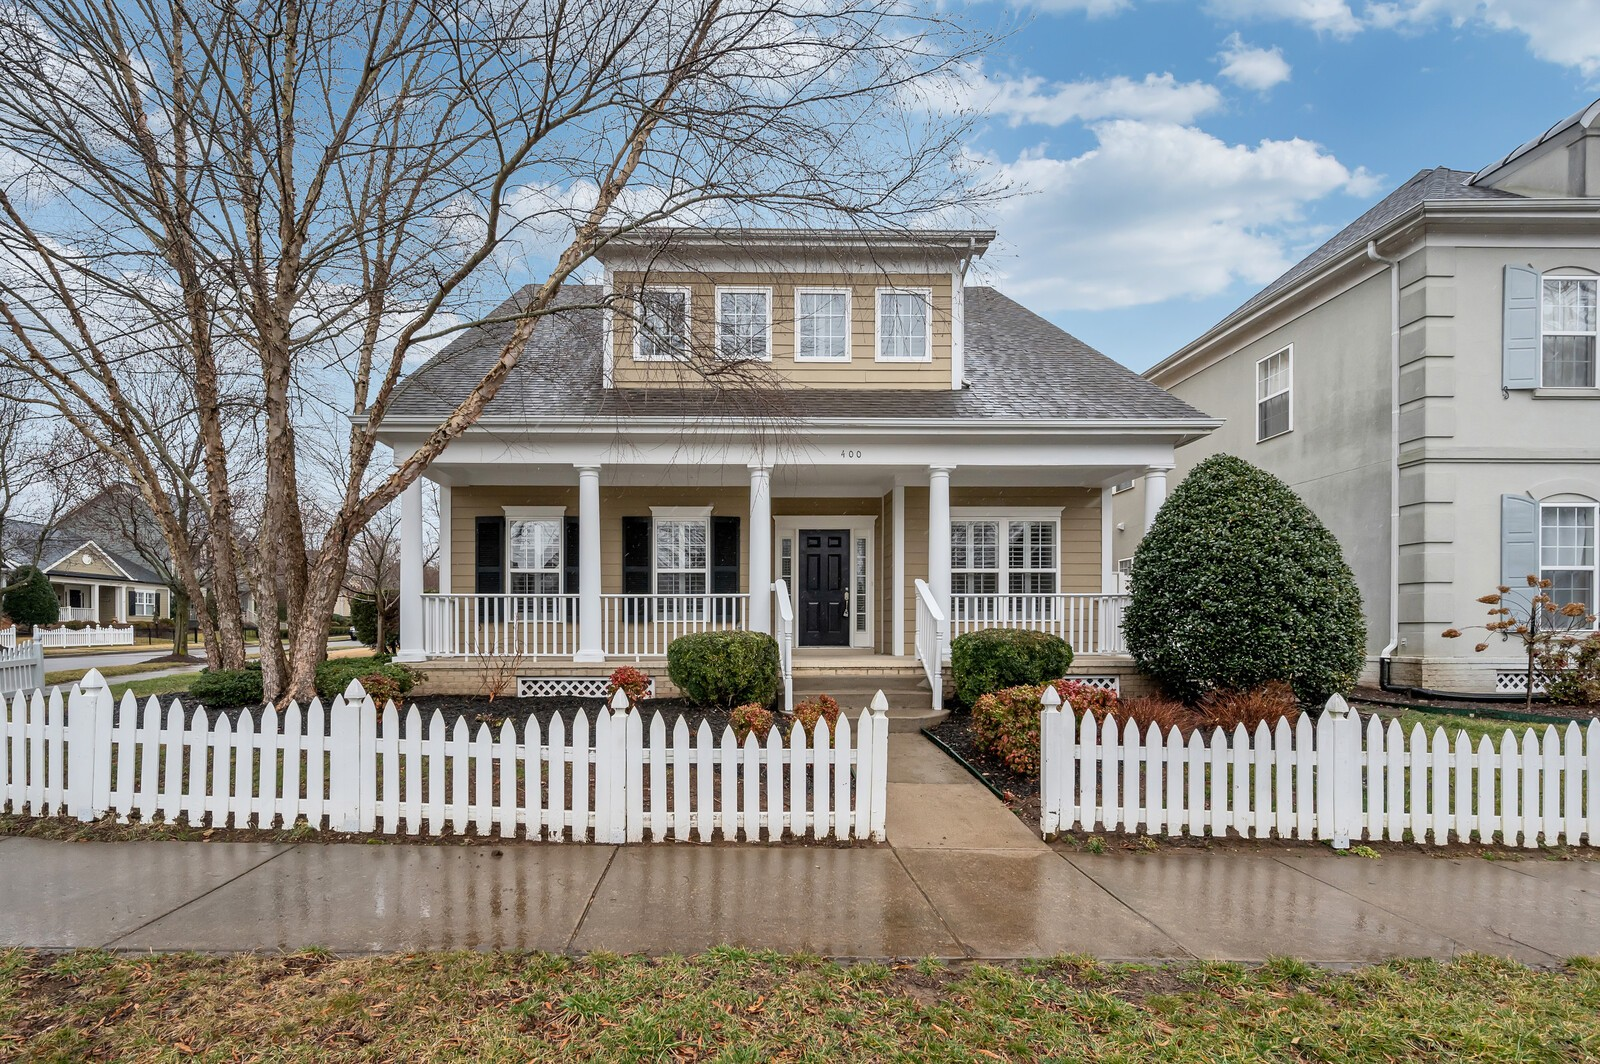 Don't miss this charming Franklin home~ 3 Bedroom~ 2.5 Bath~ Formal dining with wainscotting~ Hardwood floors~ Fresh paint throughout~ New carpet~ Built in's~ Butlers pantry~ Oversized master~ Bonus~ Corner lot~ Detached garage in rear of home with covered walkway~ Fenced back yard